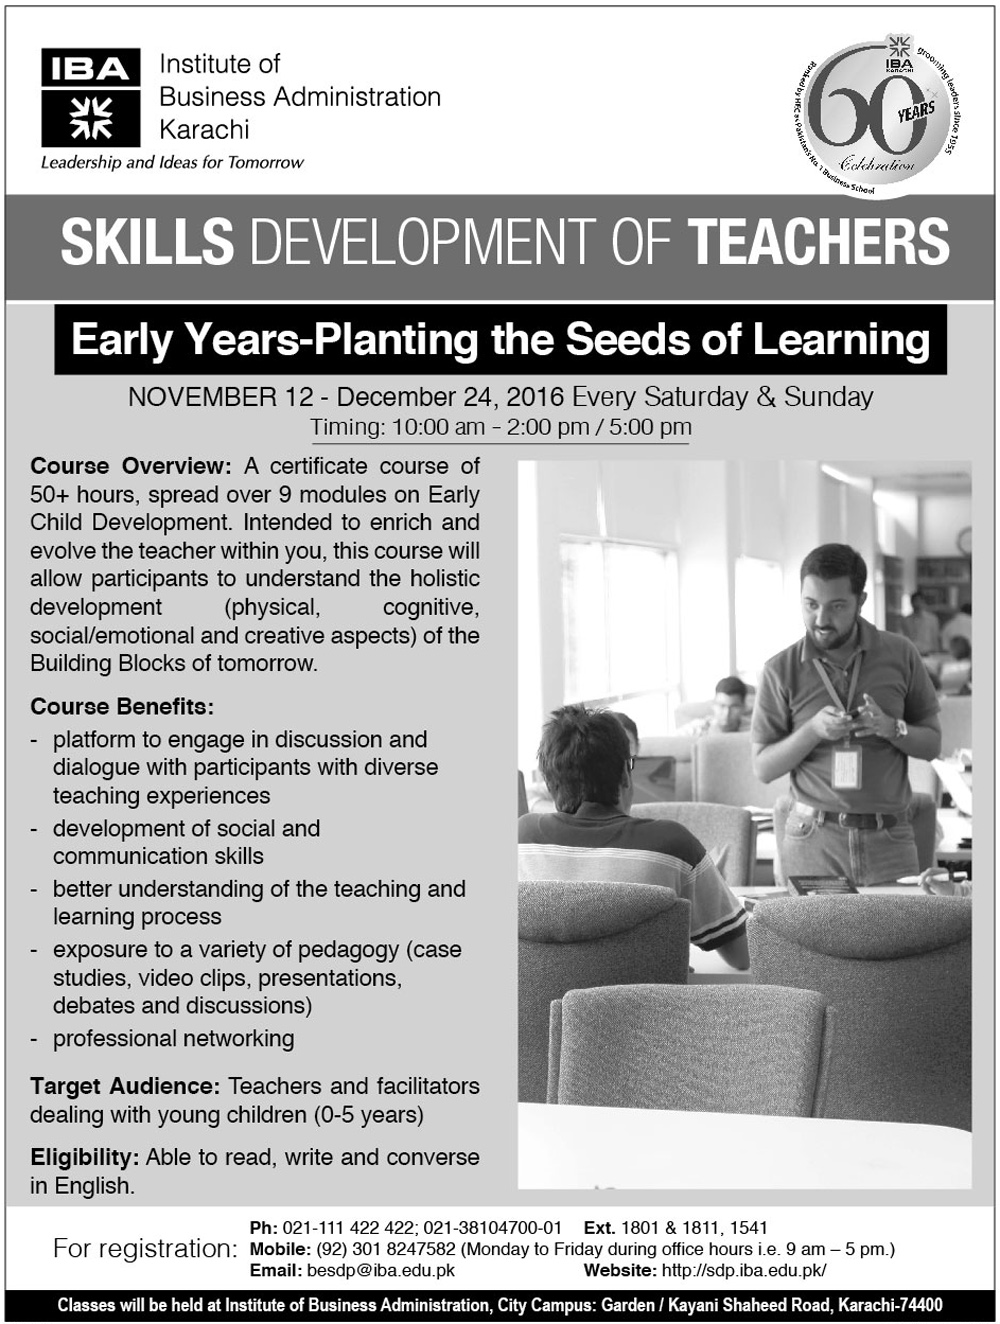 Skill Development of Teachers